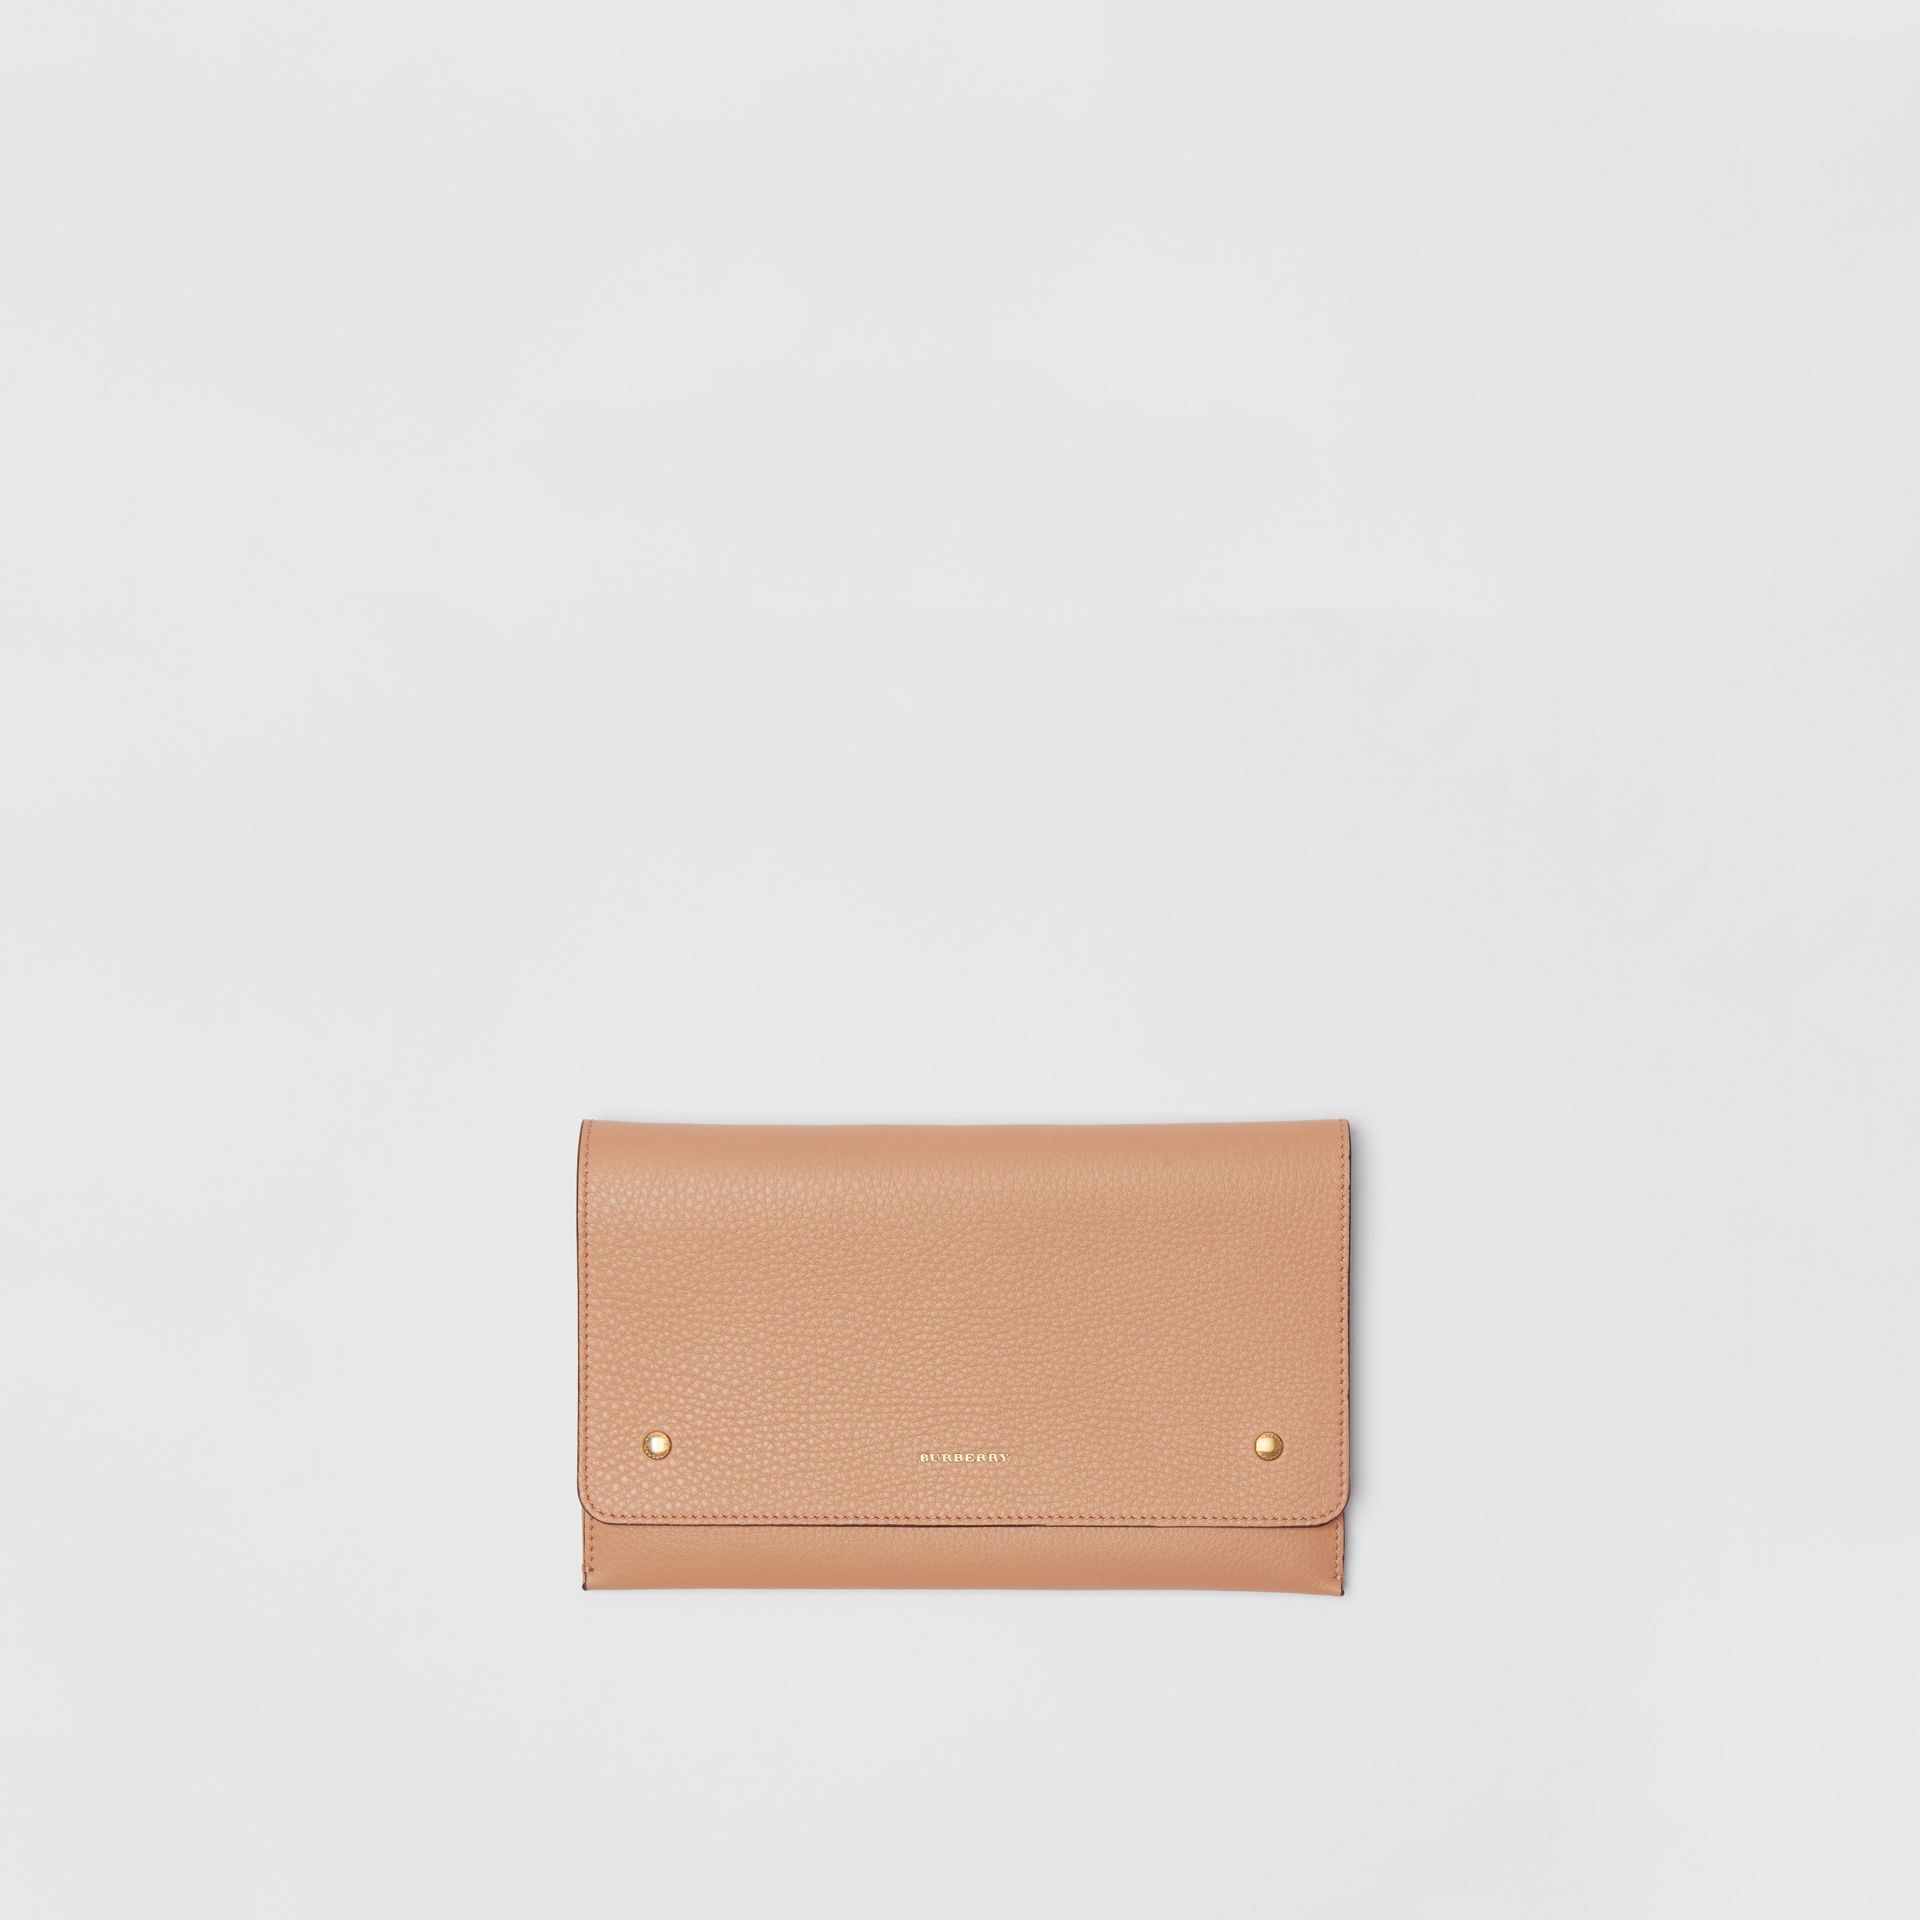 Two-tone Leather Wristlet Clutch in Light Camel - Women | Burberry United Kingdom - gallery image 0